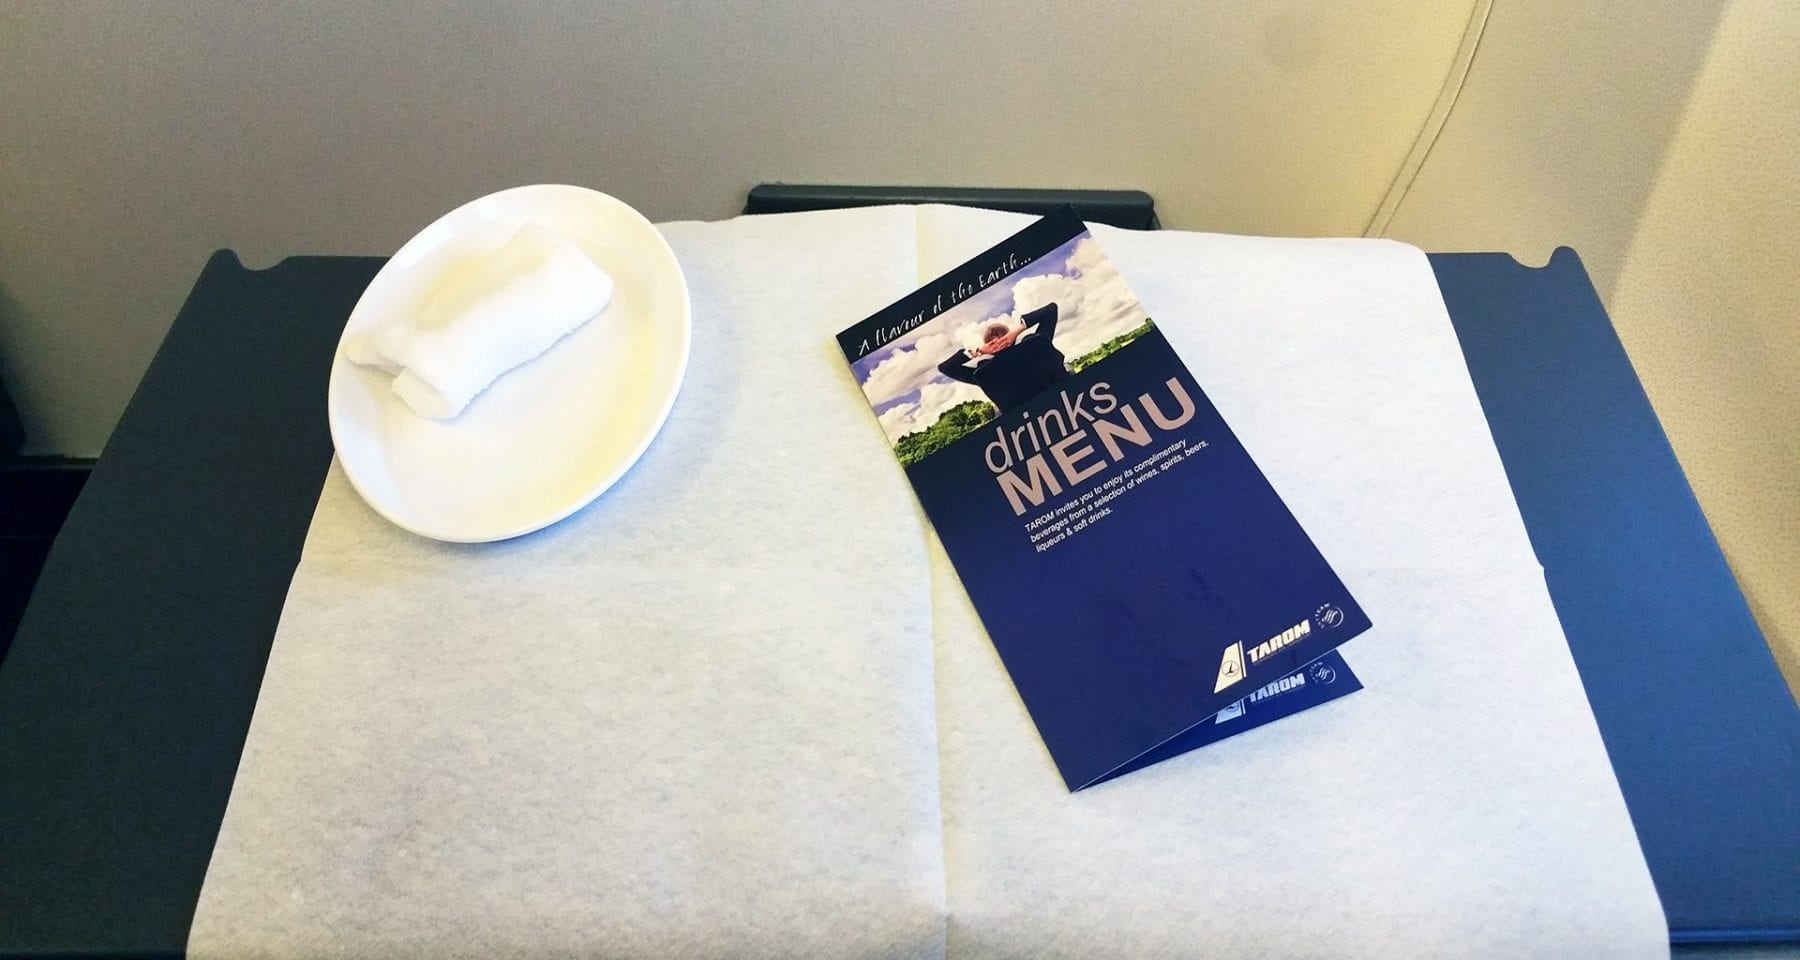 Tarom Airlines hot towel and drinks menu